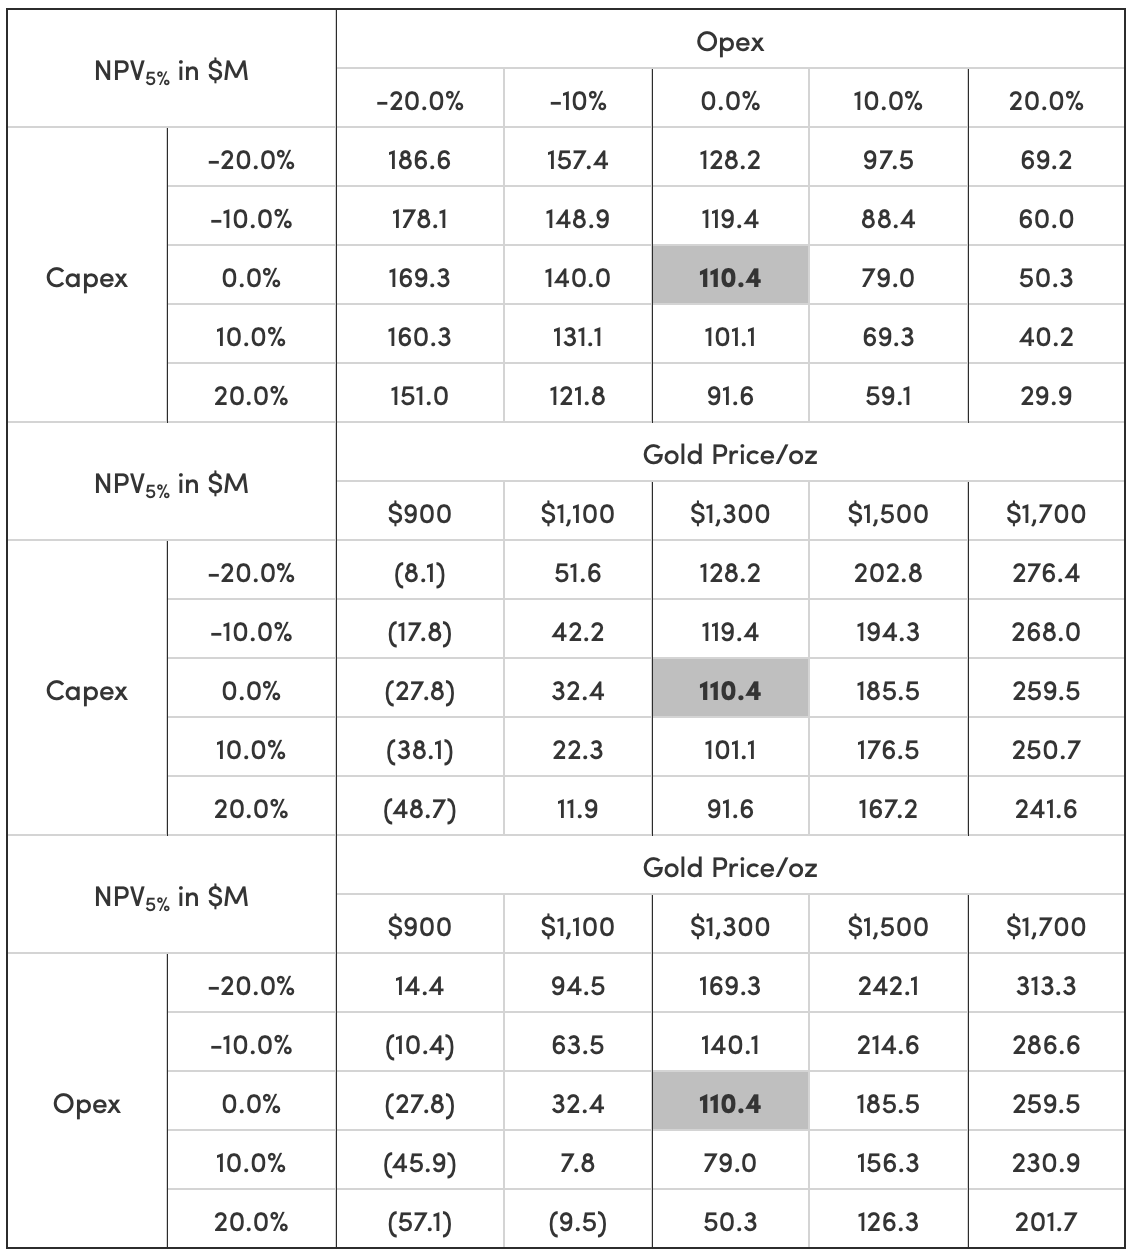 Table 7: NPV5%Sensitivity to Opex, Capex and Gold Price